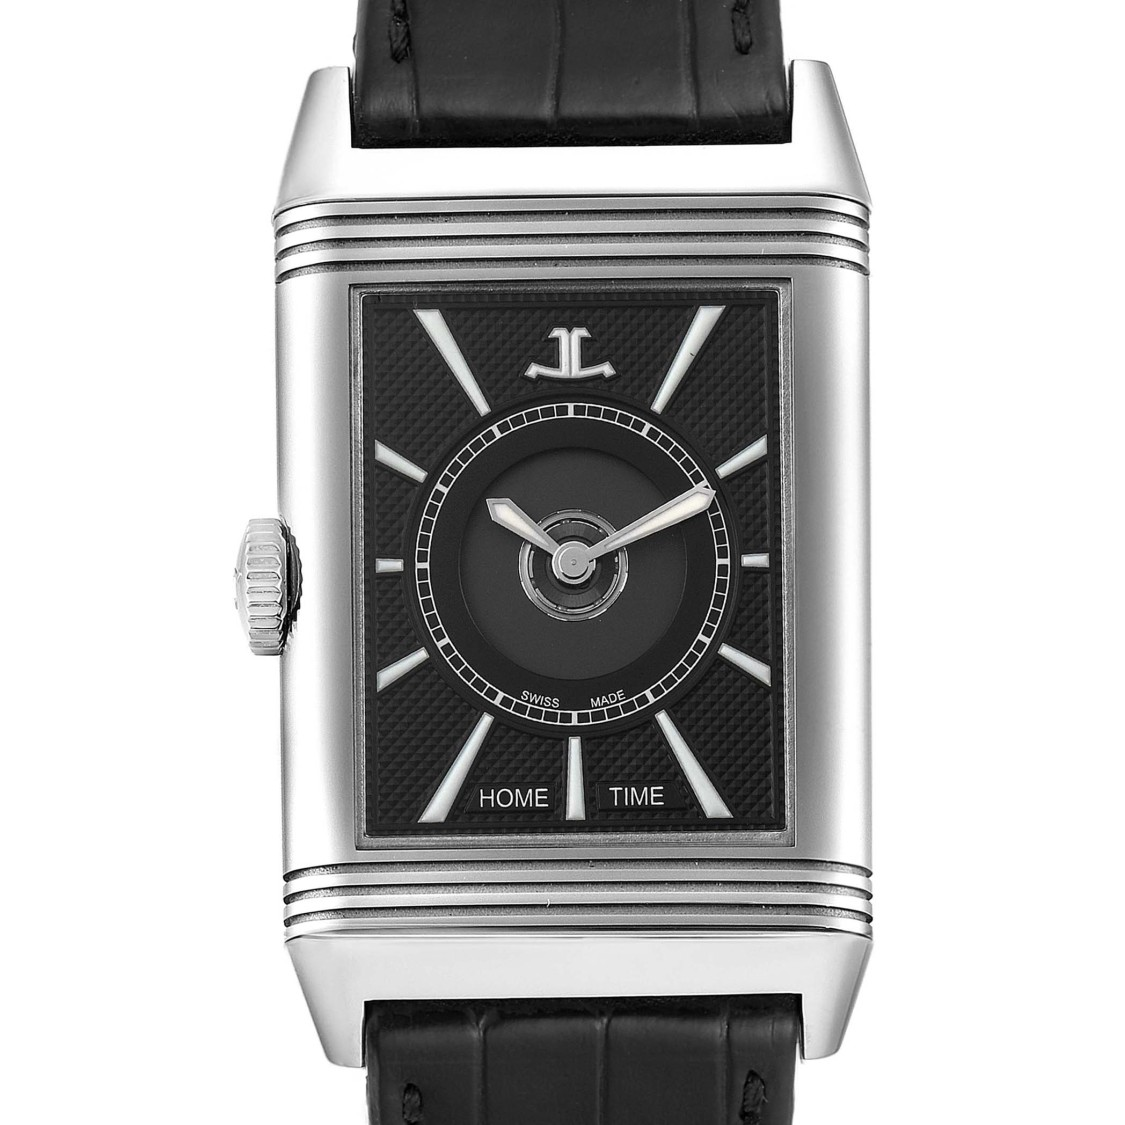 Jaeger-lecoultre Reverso Classic Large Duoface Day Night Steel Mens Watch 215.8.s9 Q3838420 In Not Applicable